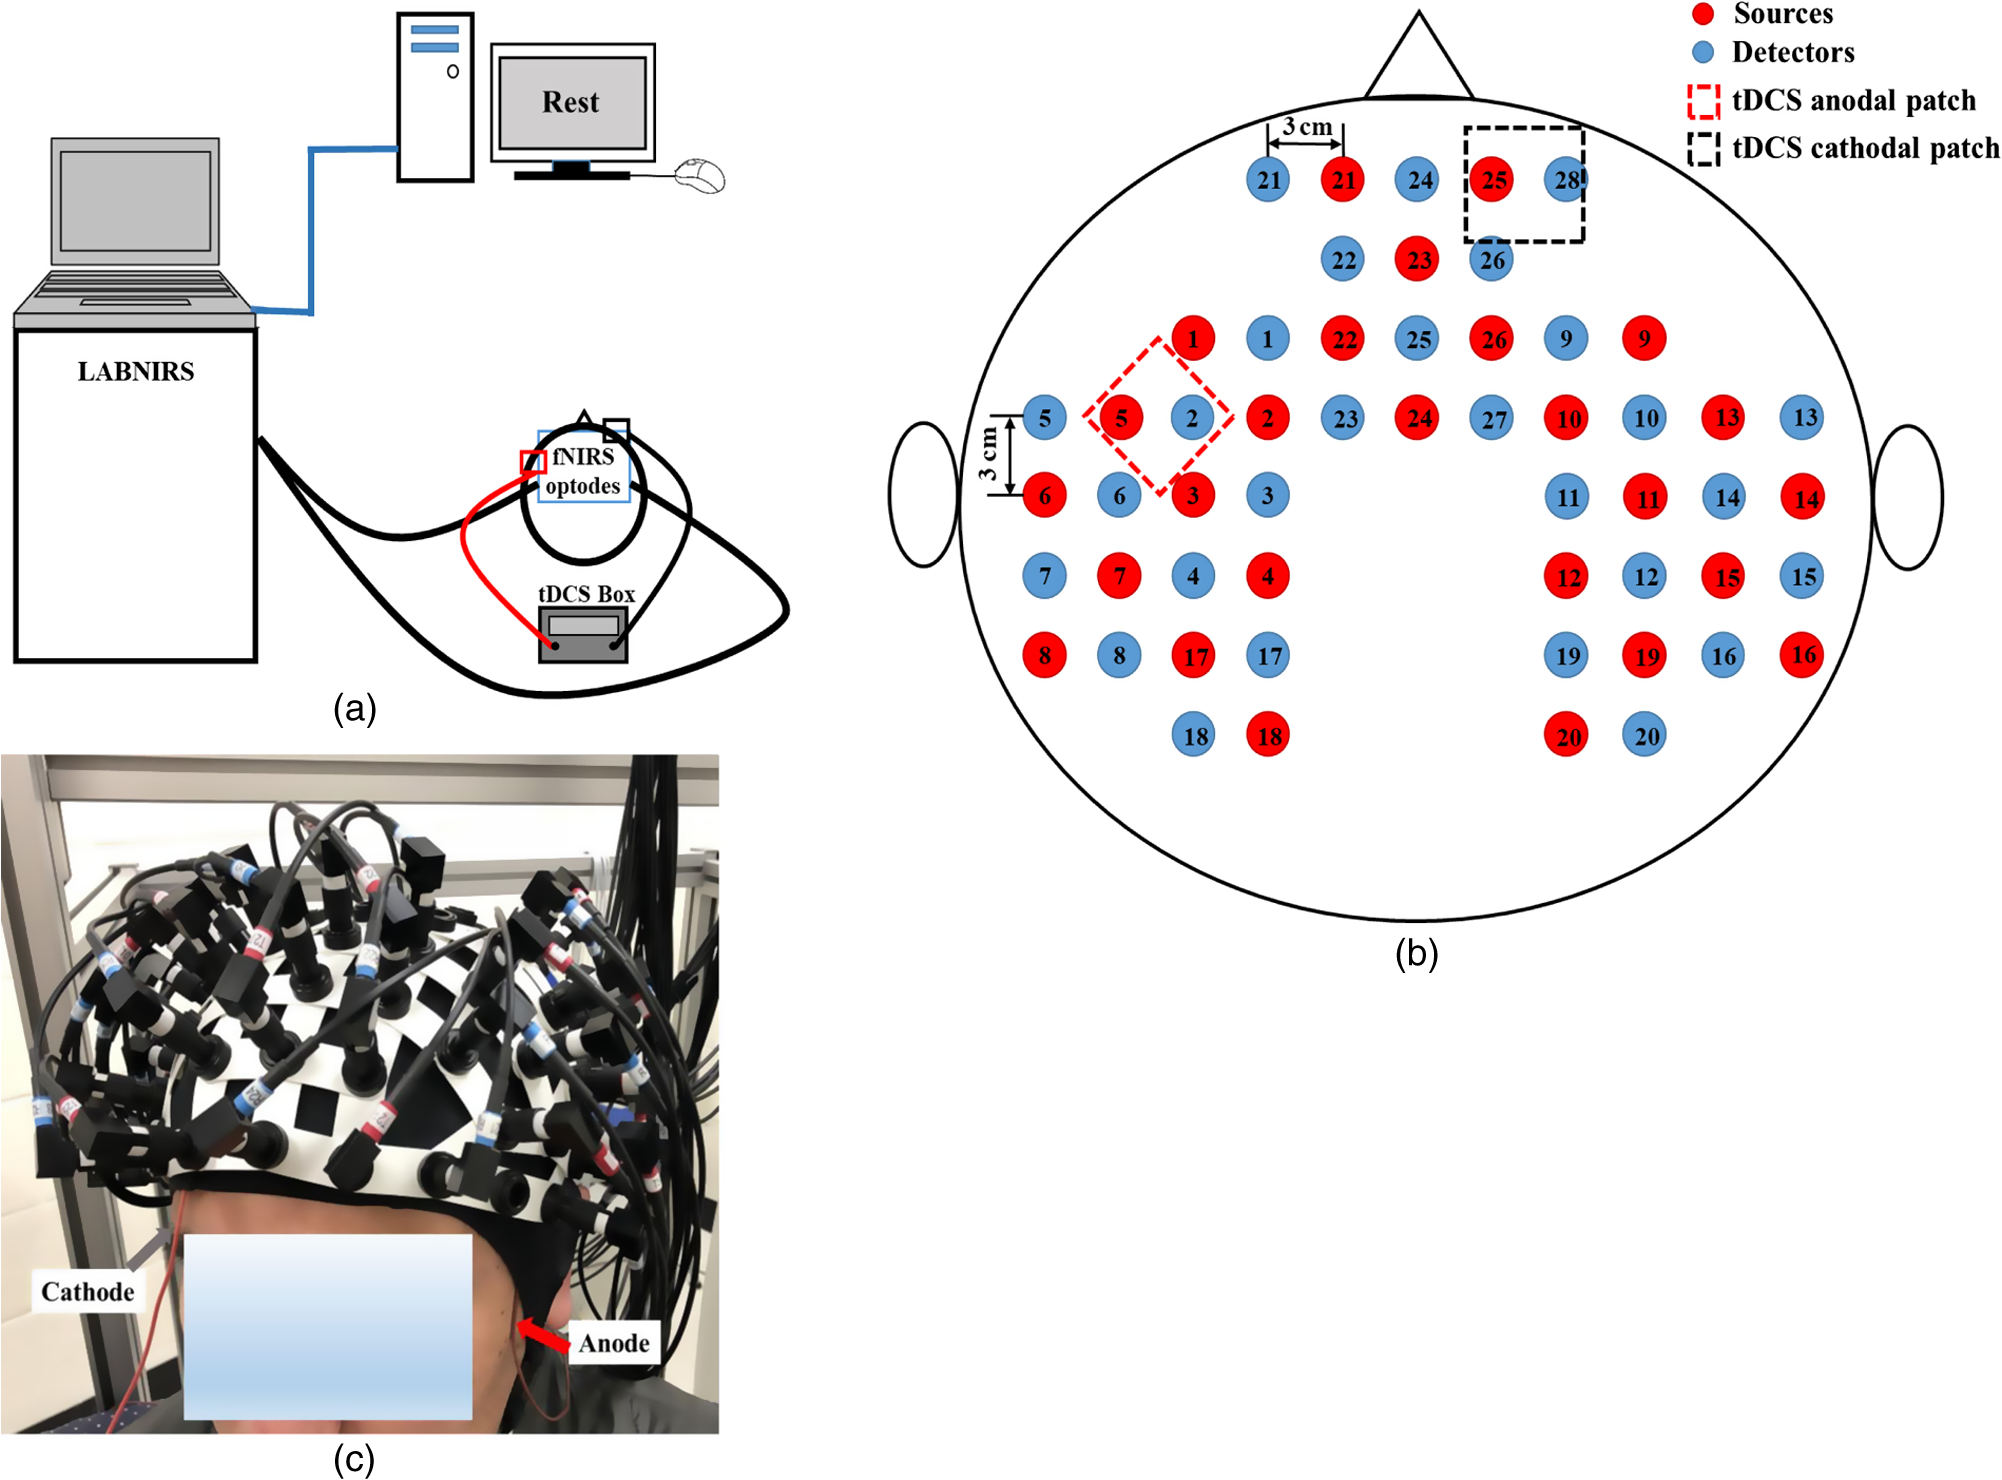 Modulating The Resting State Functional Connectivity Patterns Of Dc Wiring Diagram For Atlas Point Motor Gray Arrow Points To Wire Connecting Cathode Patch And Red Anode